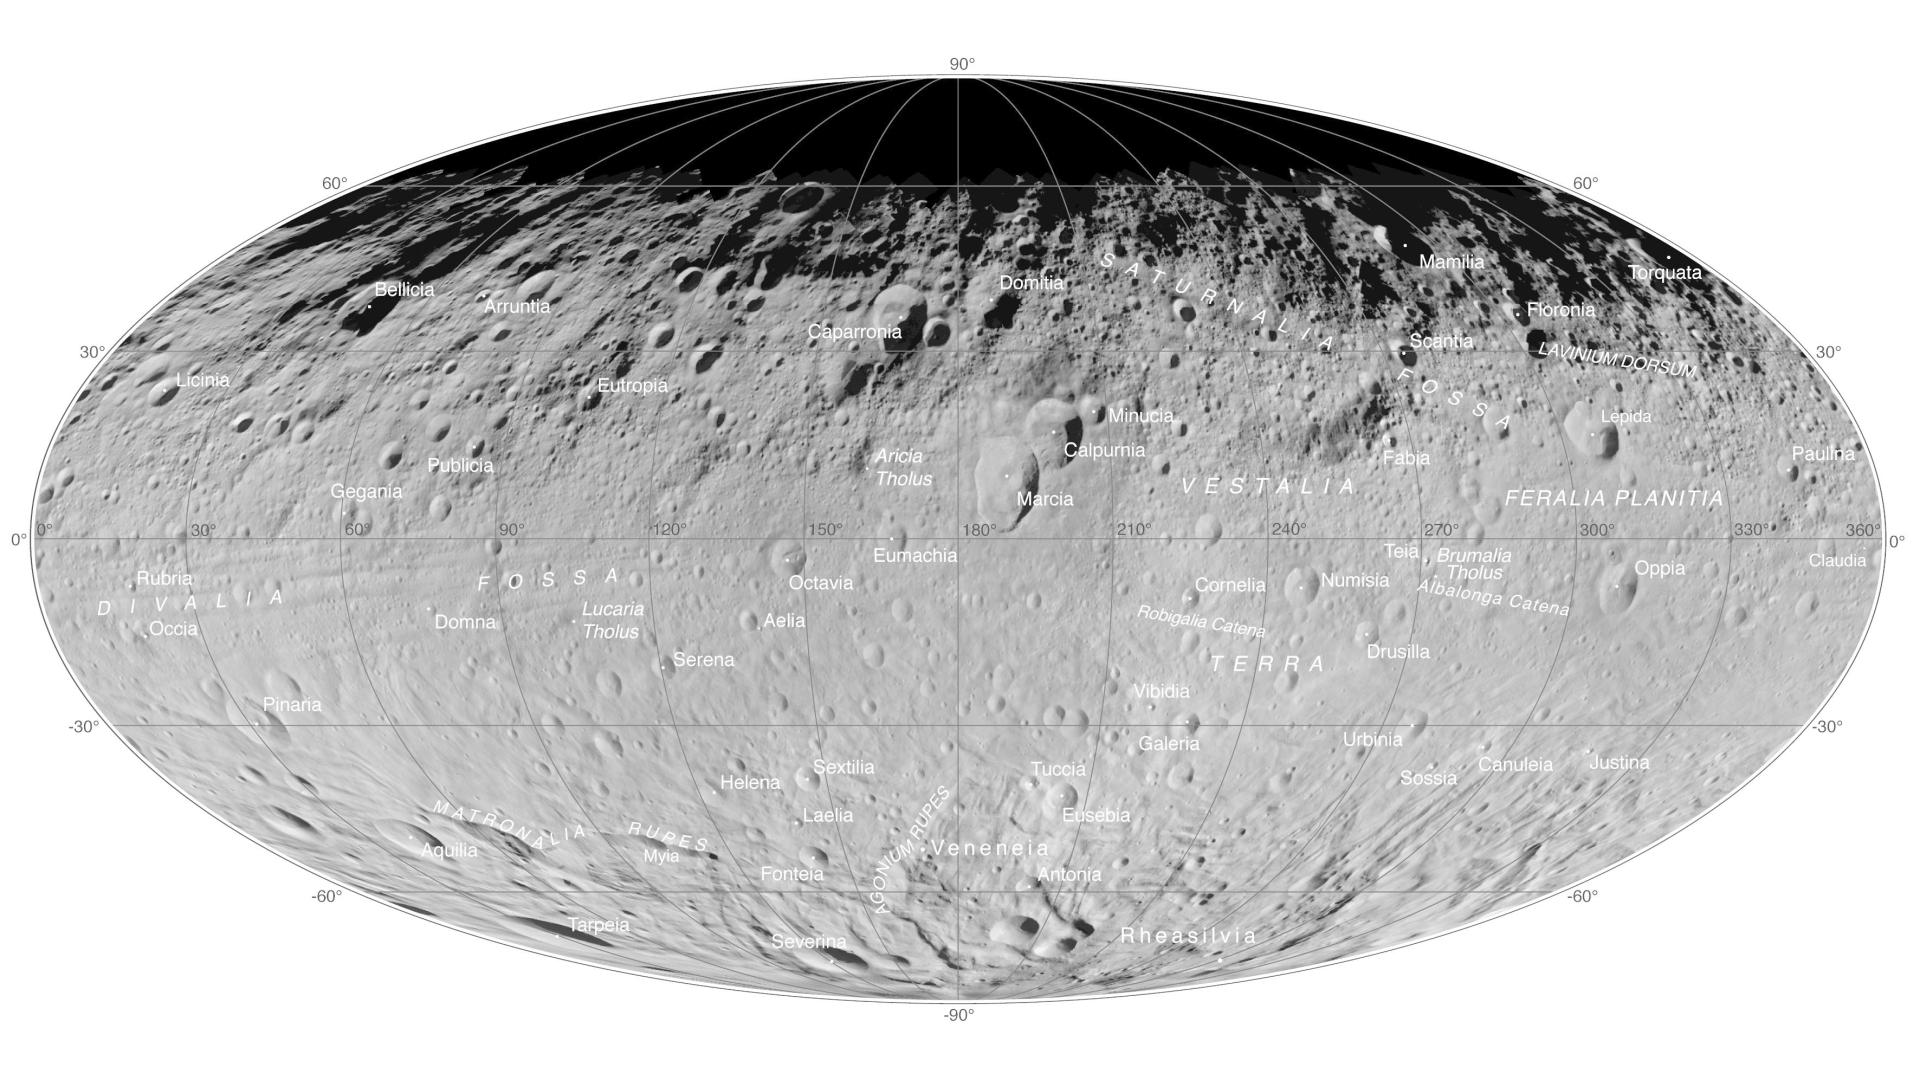 Overview of the asteroid Vesta